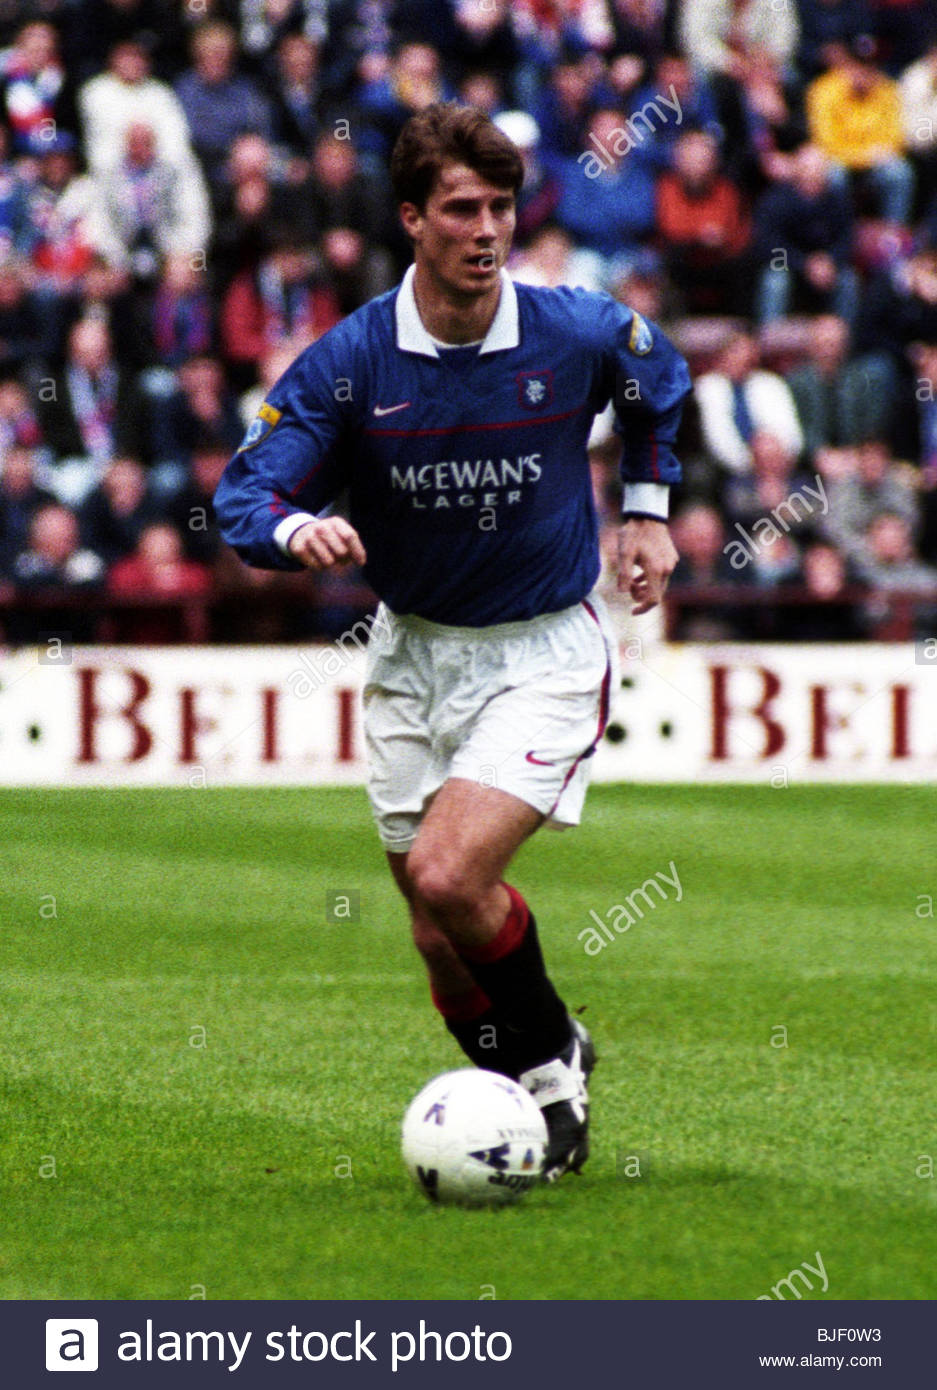 25/04/98 BELL'S PREMIER DIVISION HEARTS v RANGERS (0-3) TYNECASTLE - EDINBURGH Brian Laudrup in action for Rangers. - Stock Image